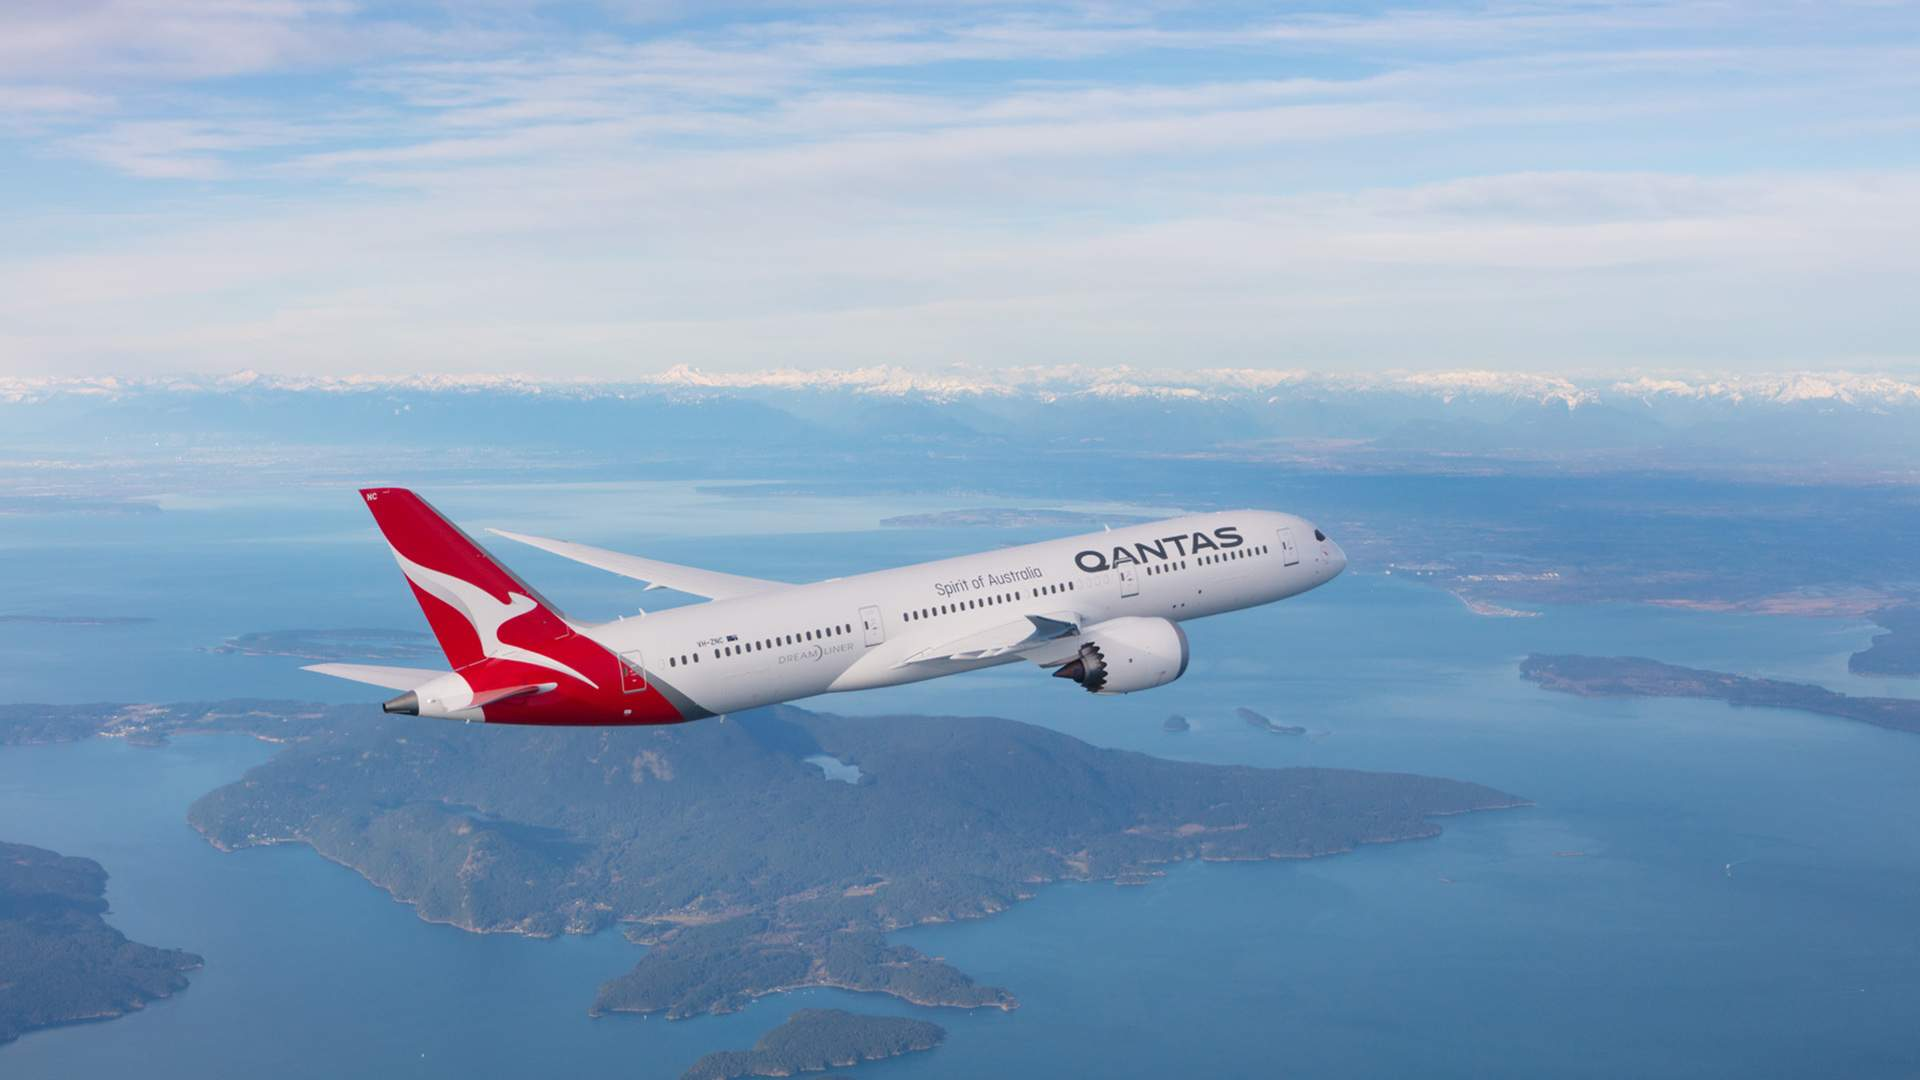 Qantas Has Been Named the World's Safest Airline for 2019